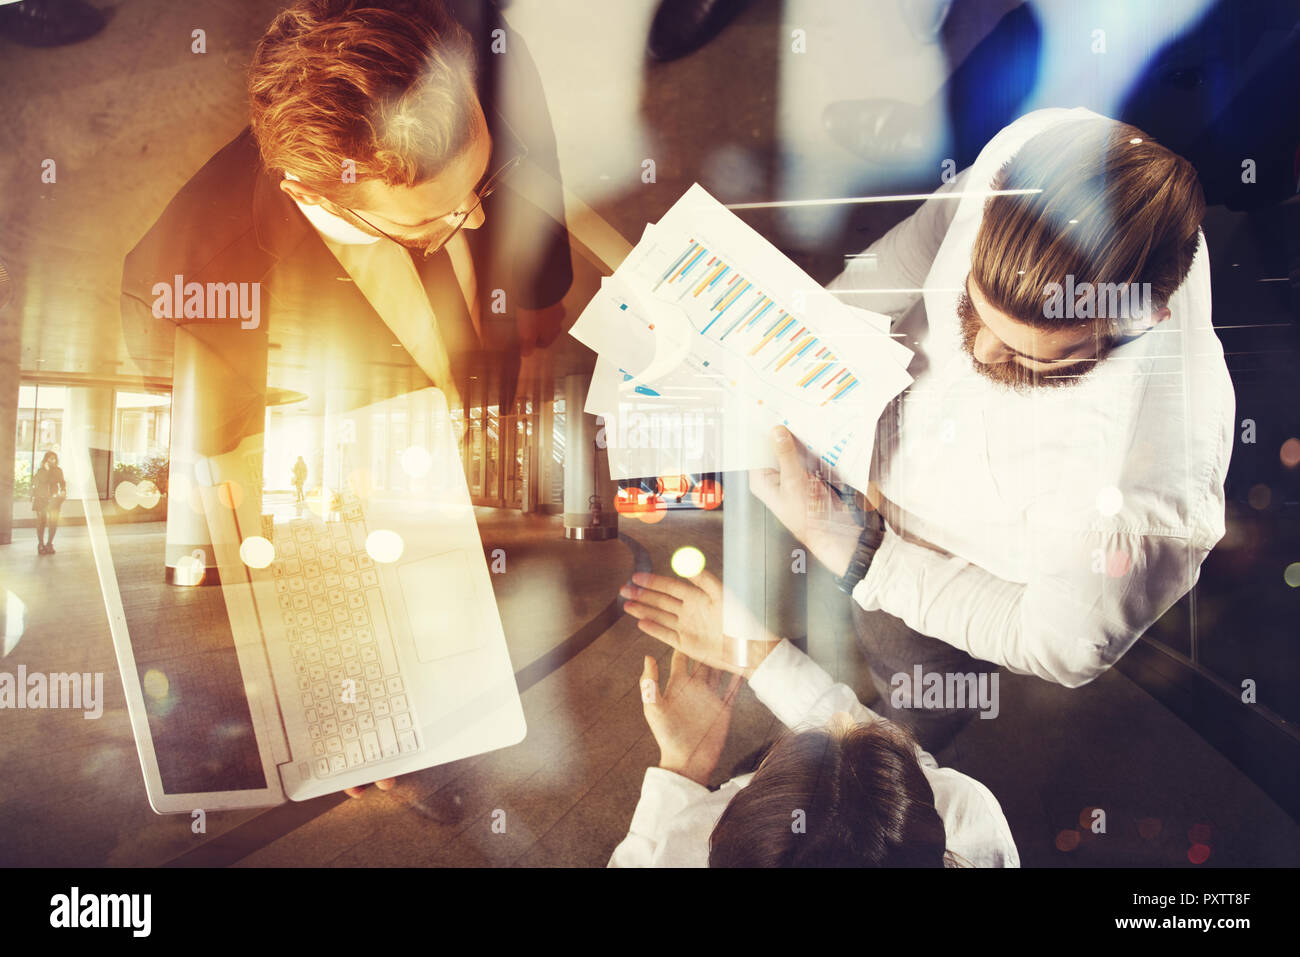 Business Concept With Calculator Stock Photos Amp Business Concept With Calculator Stock Images